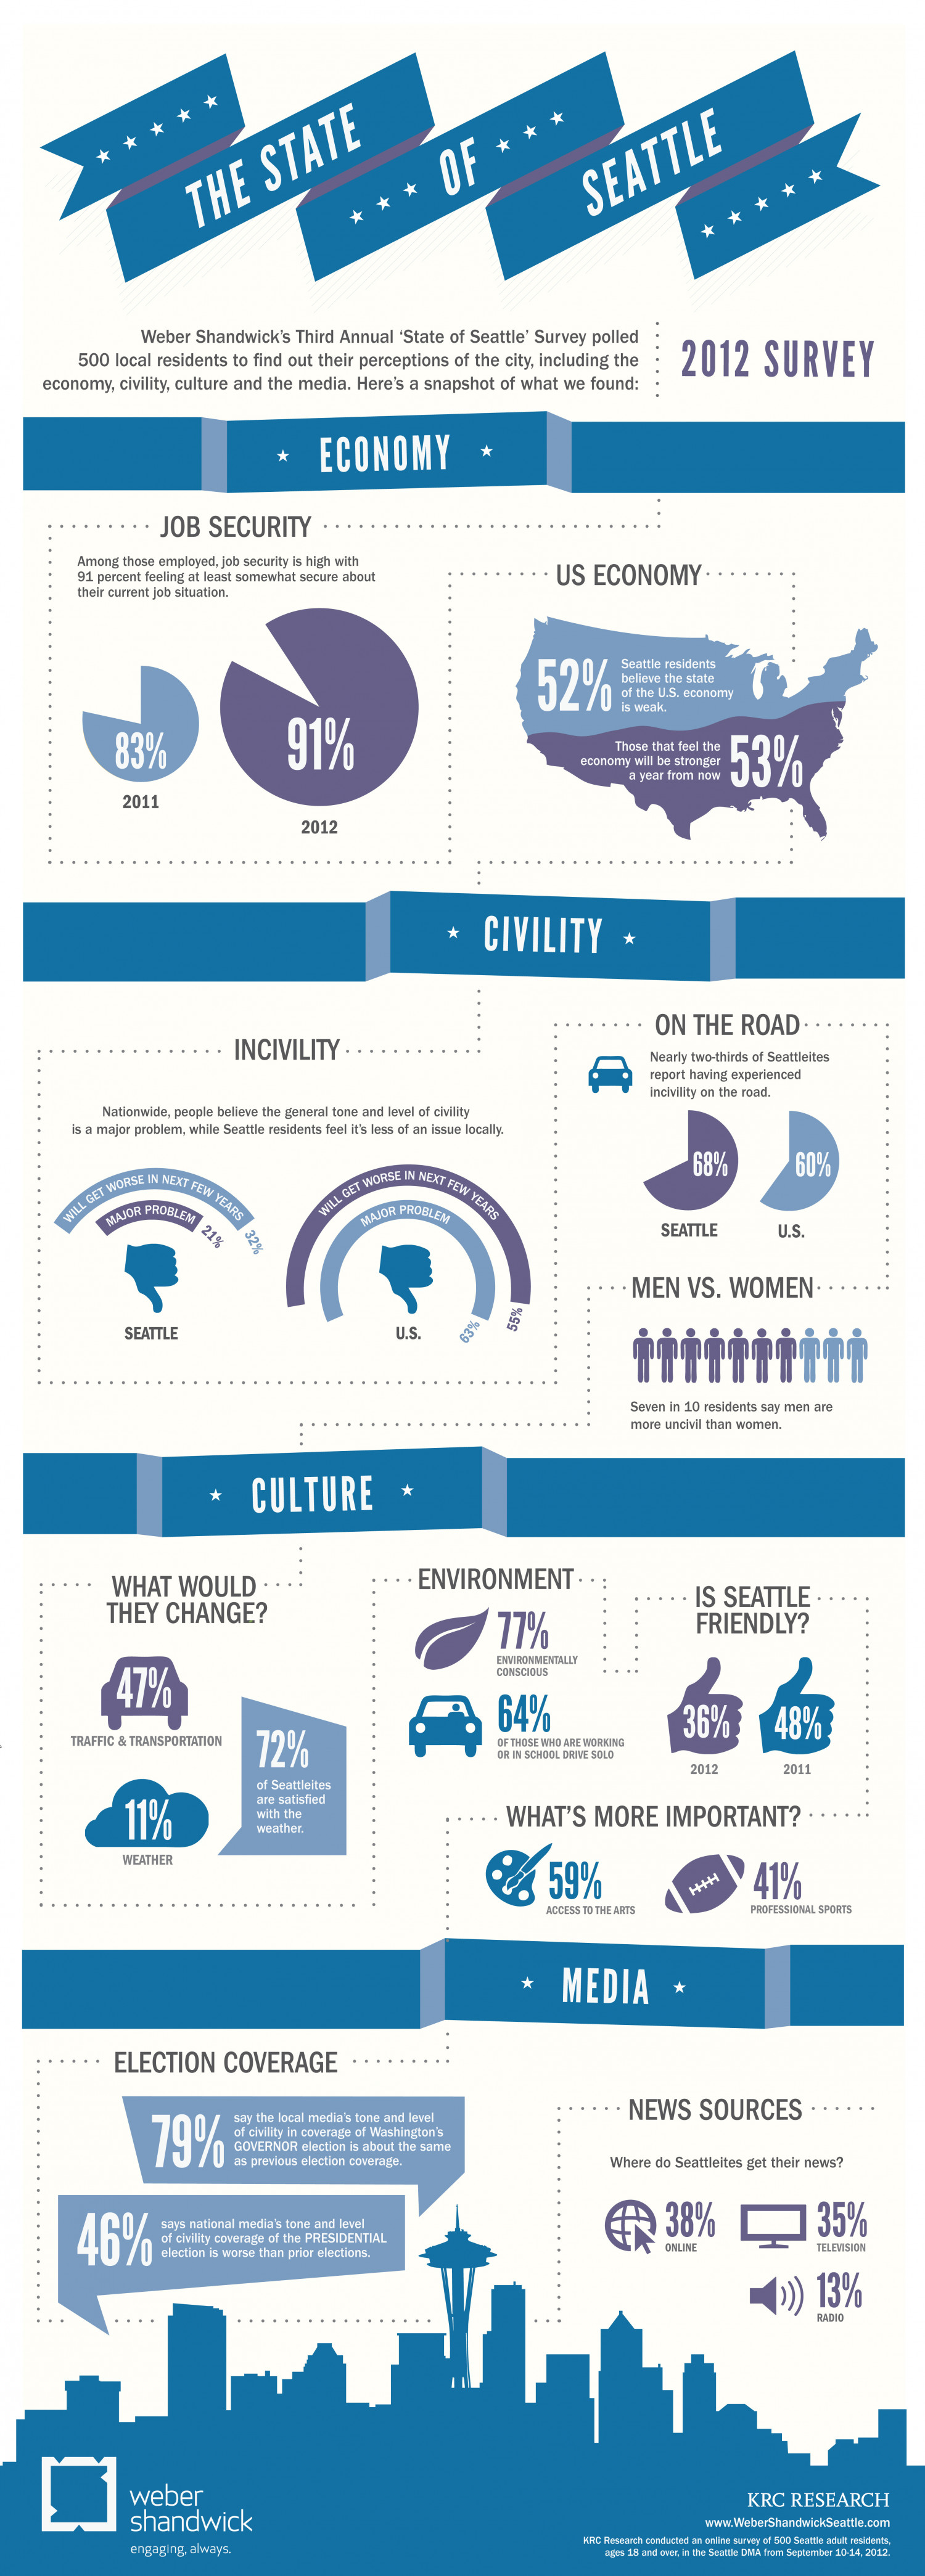 'State of Seattle' Survey Infographic